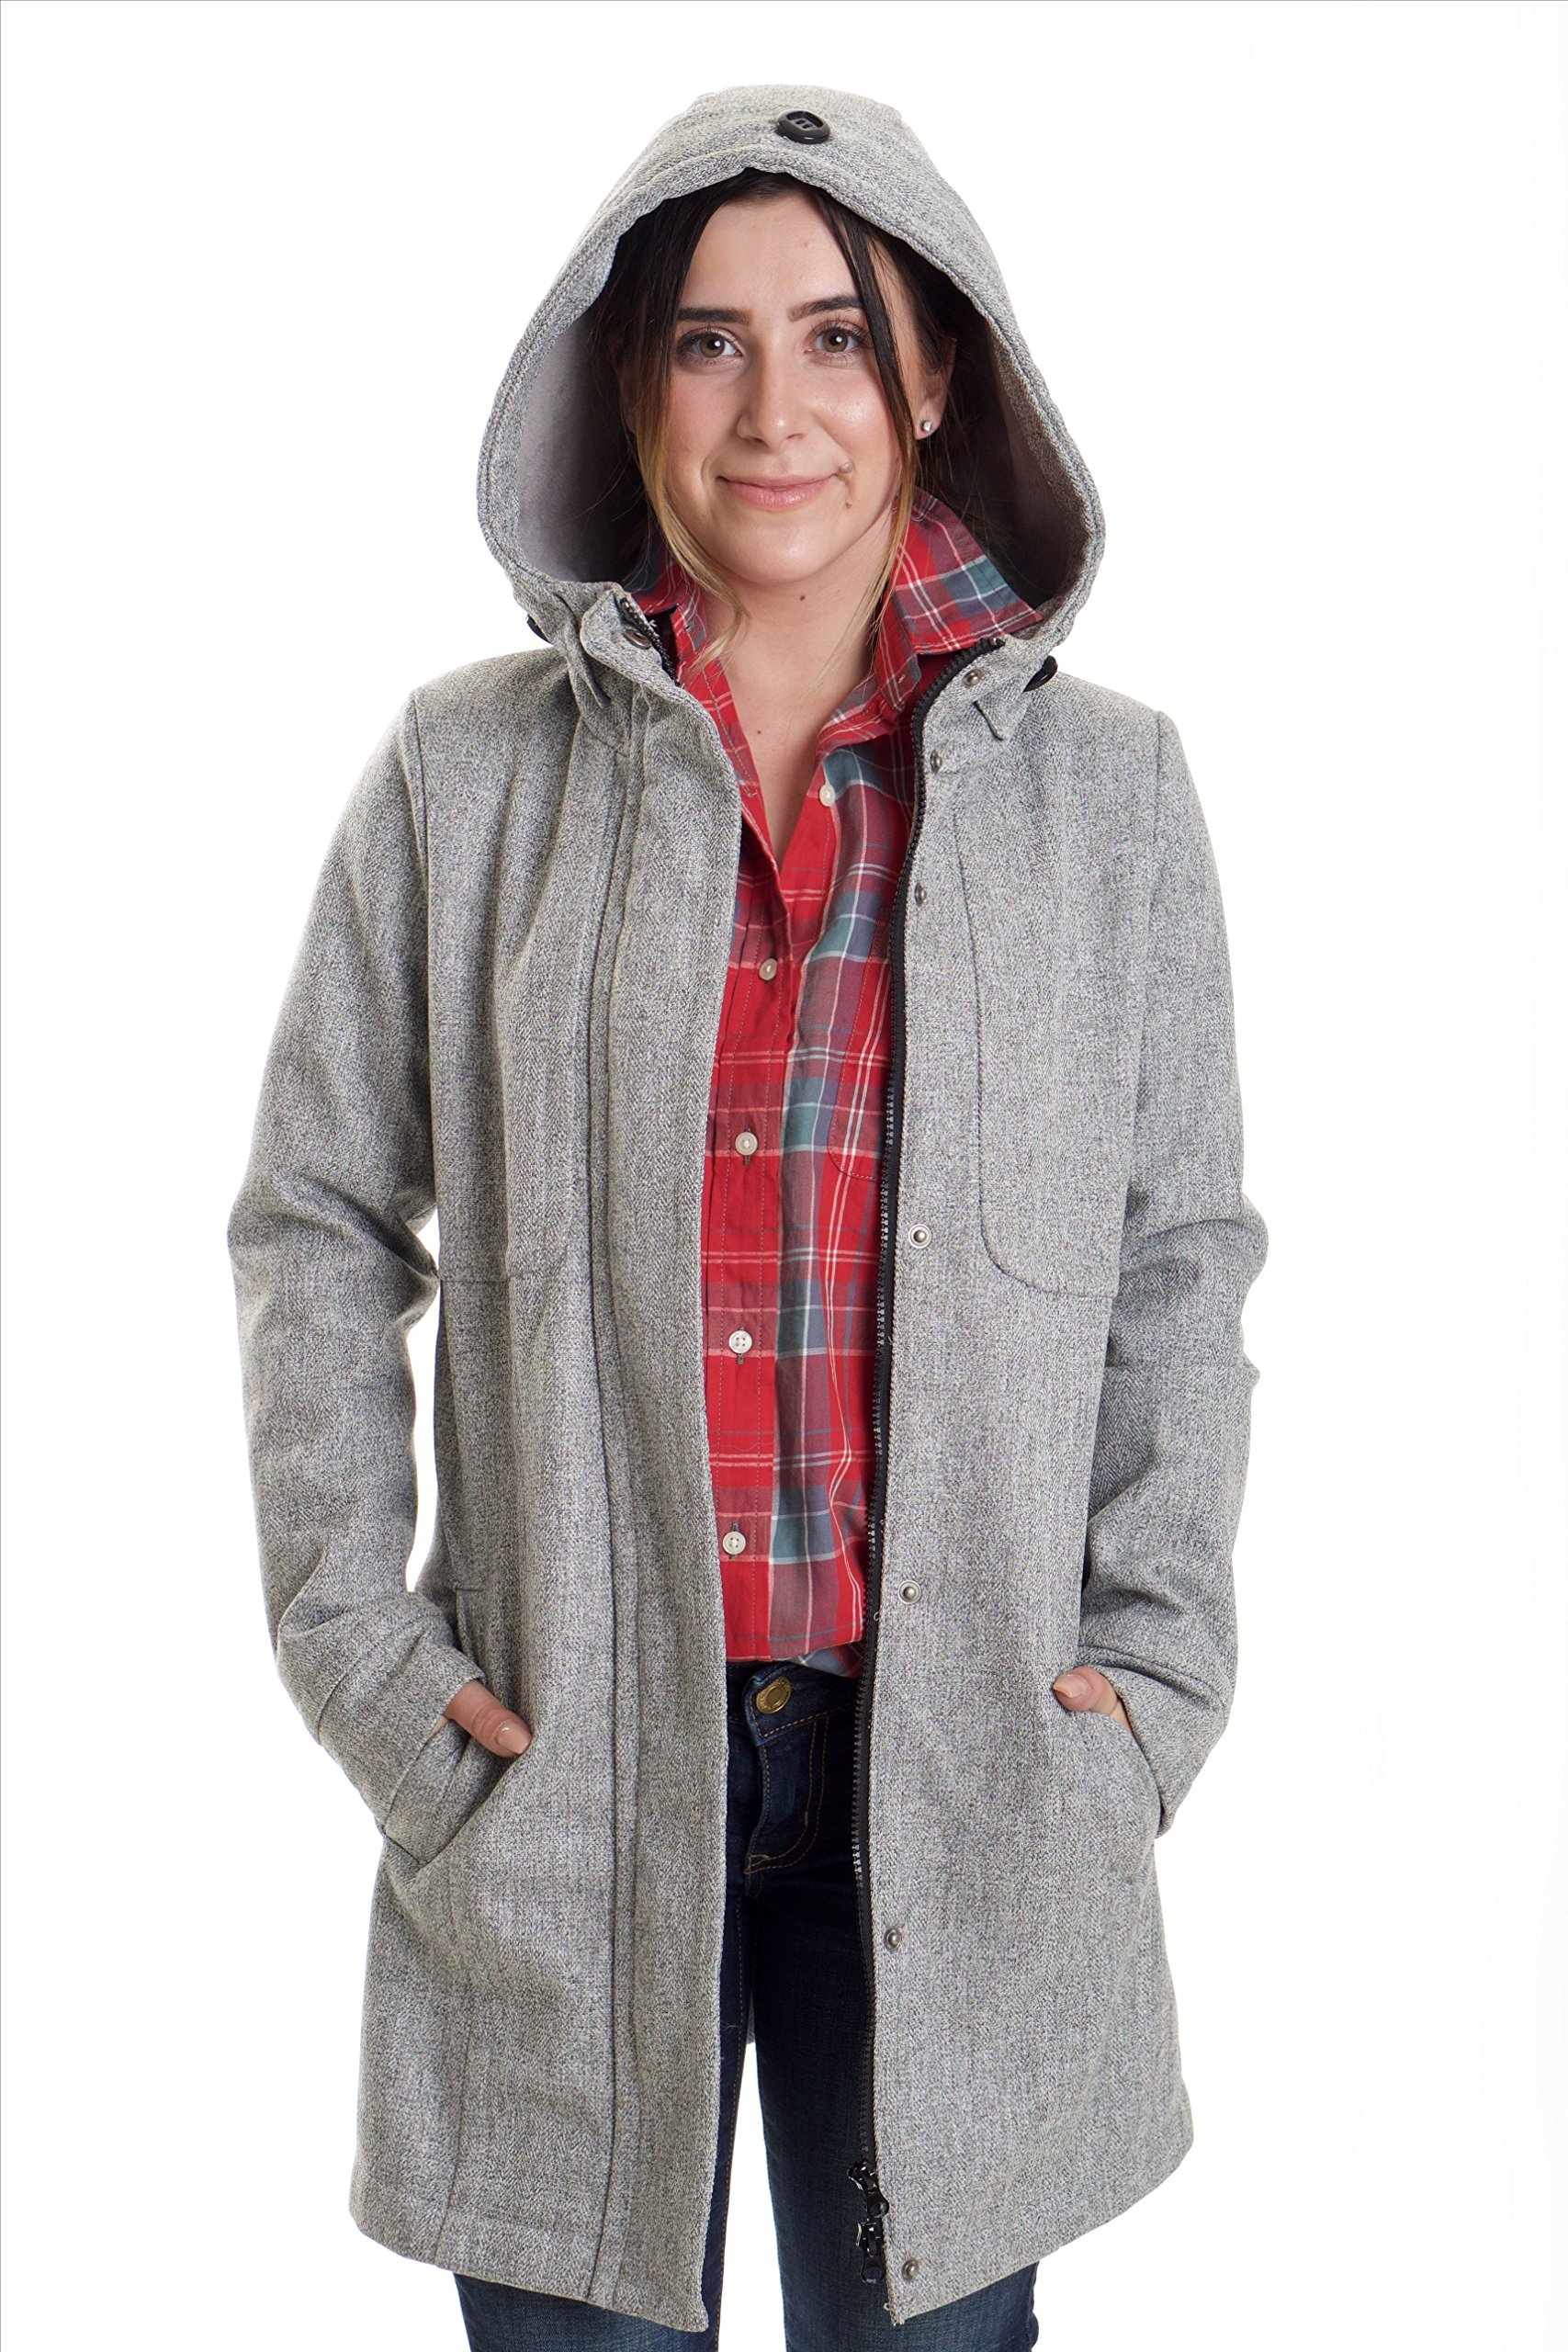 Kliq Women's Rigby Jacket Grey - Stroller Polyester Winter Wear with Front Zip and Button Closure - Large